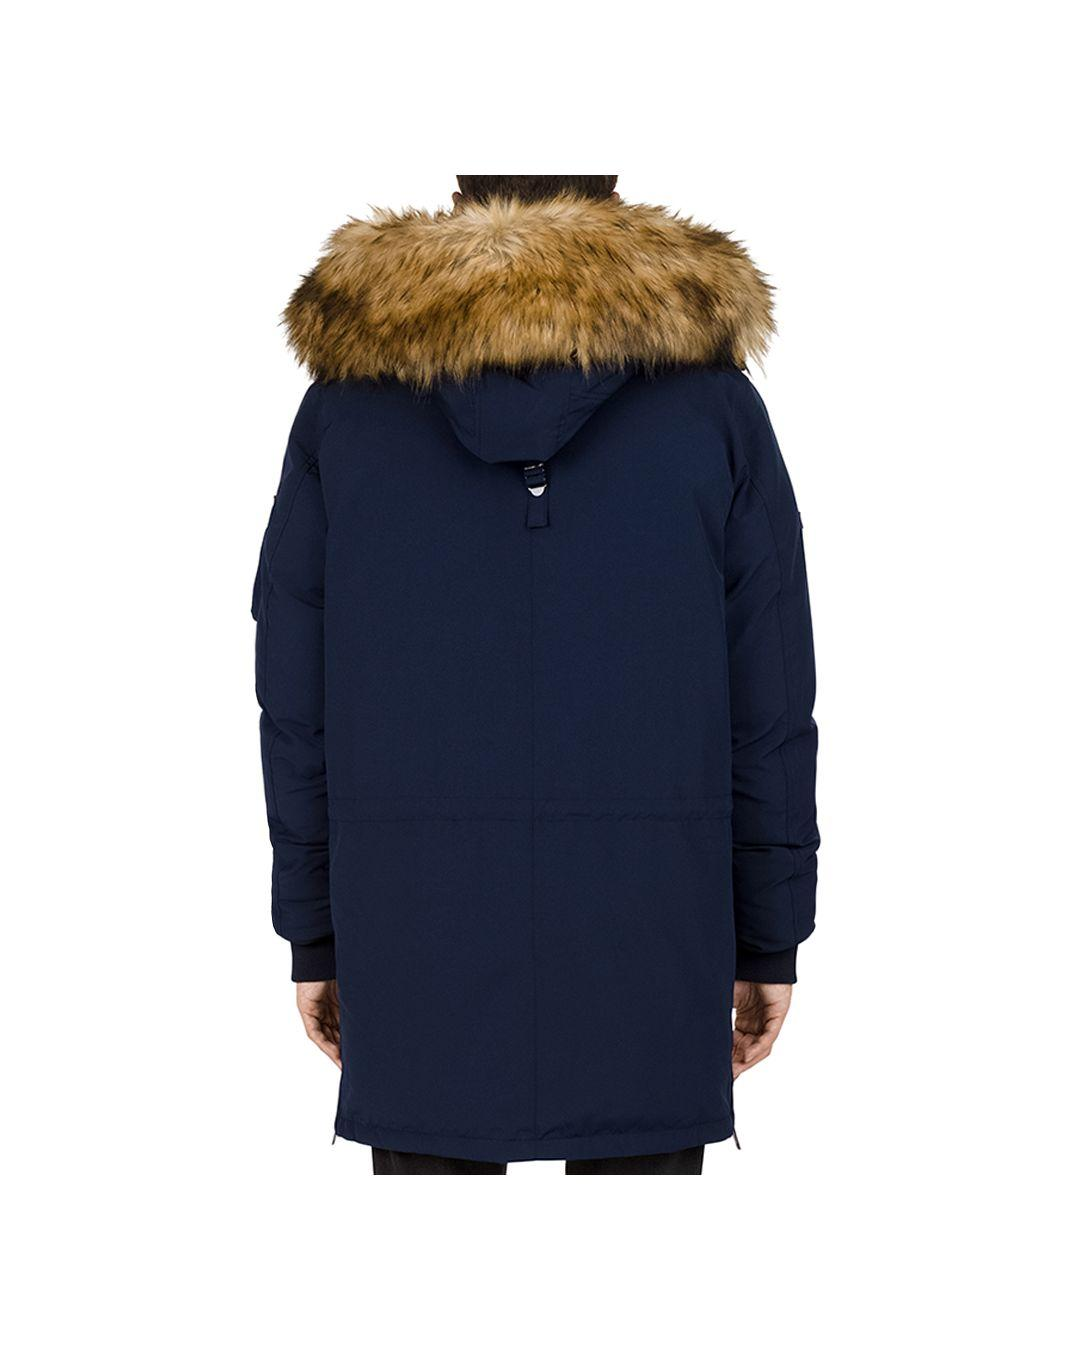 d358cd8f96 Lyst - The Kooples Mixed - Media Puffa Parka Jacket in Blue for Men